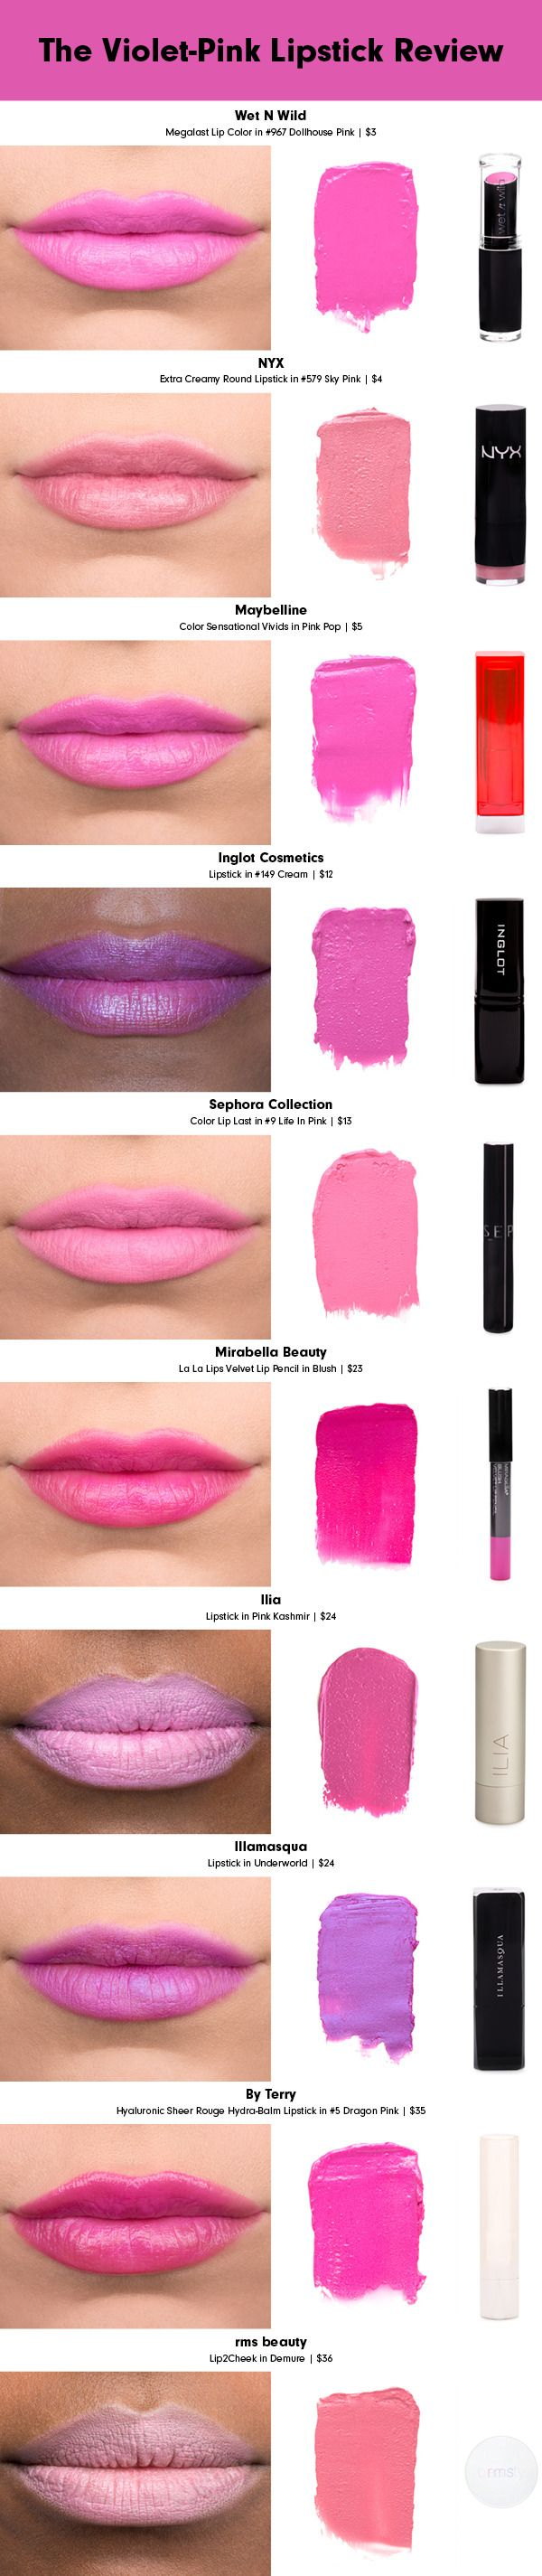 Quotes About Pink Lipstick. QuotesGram